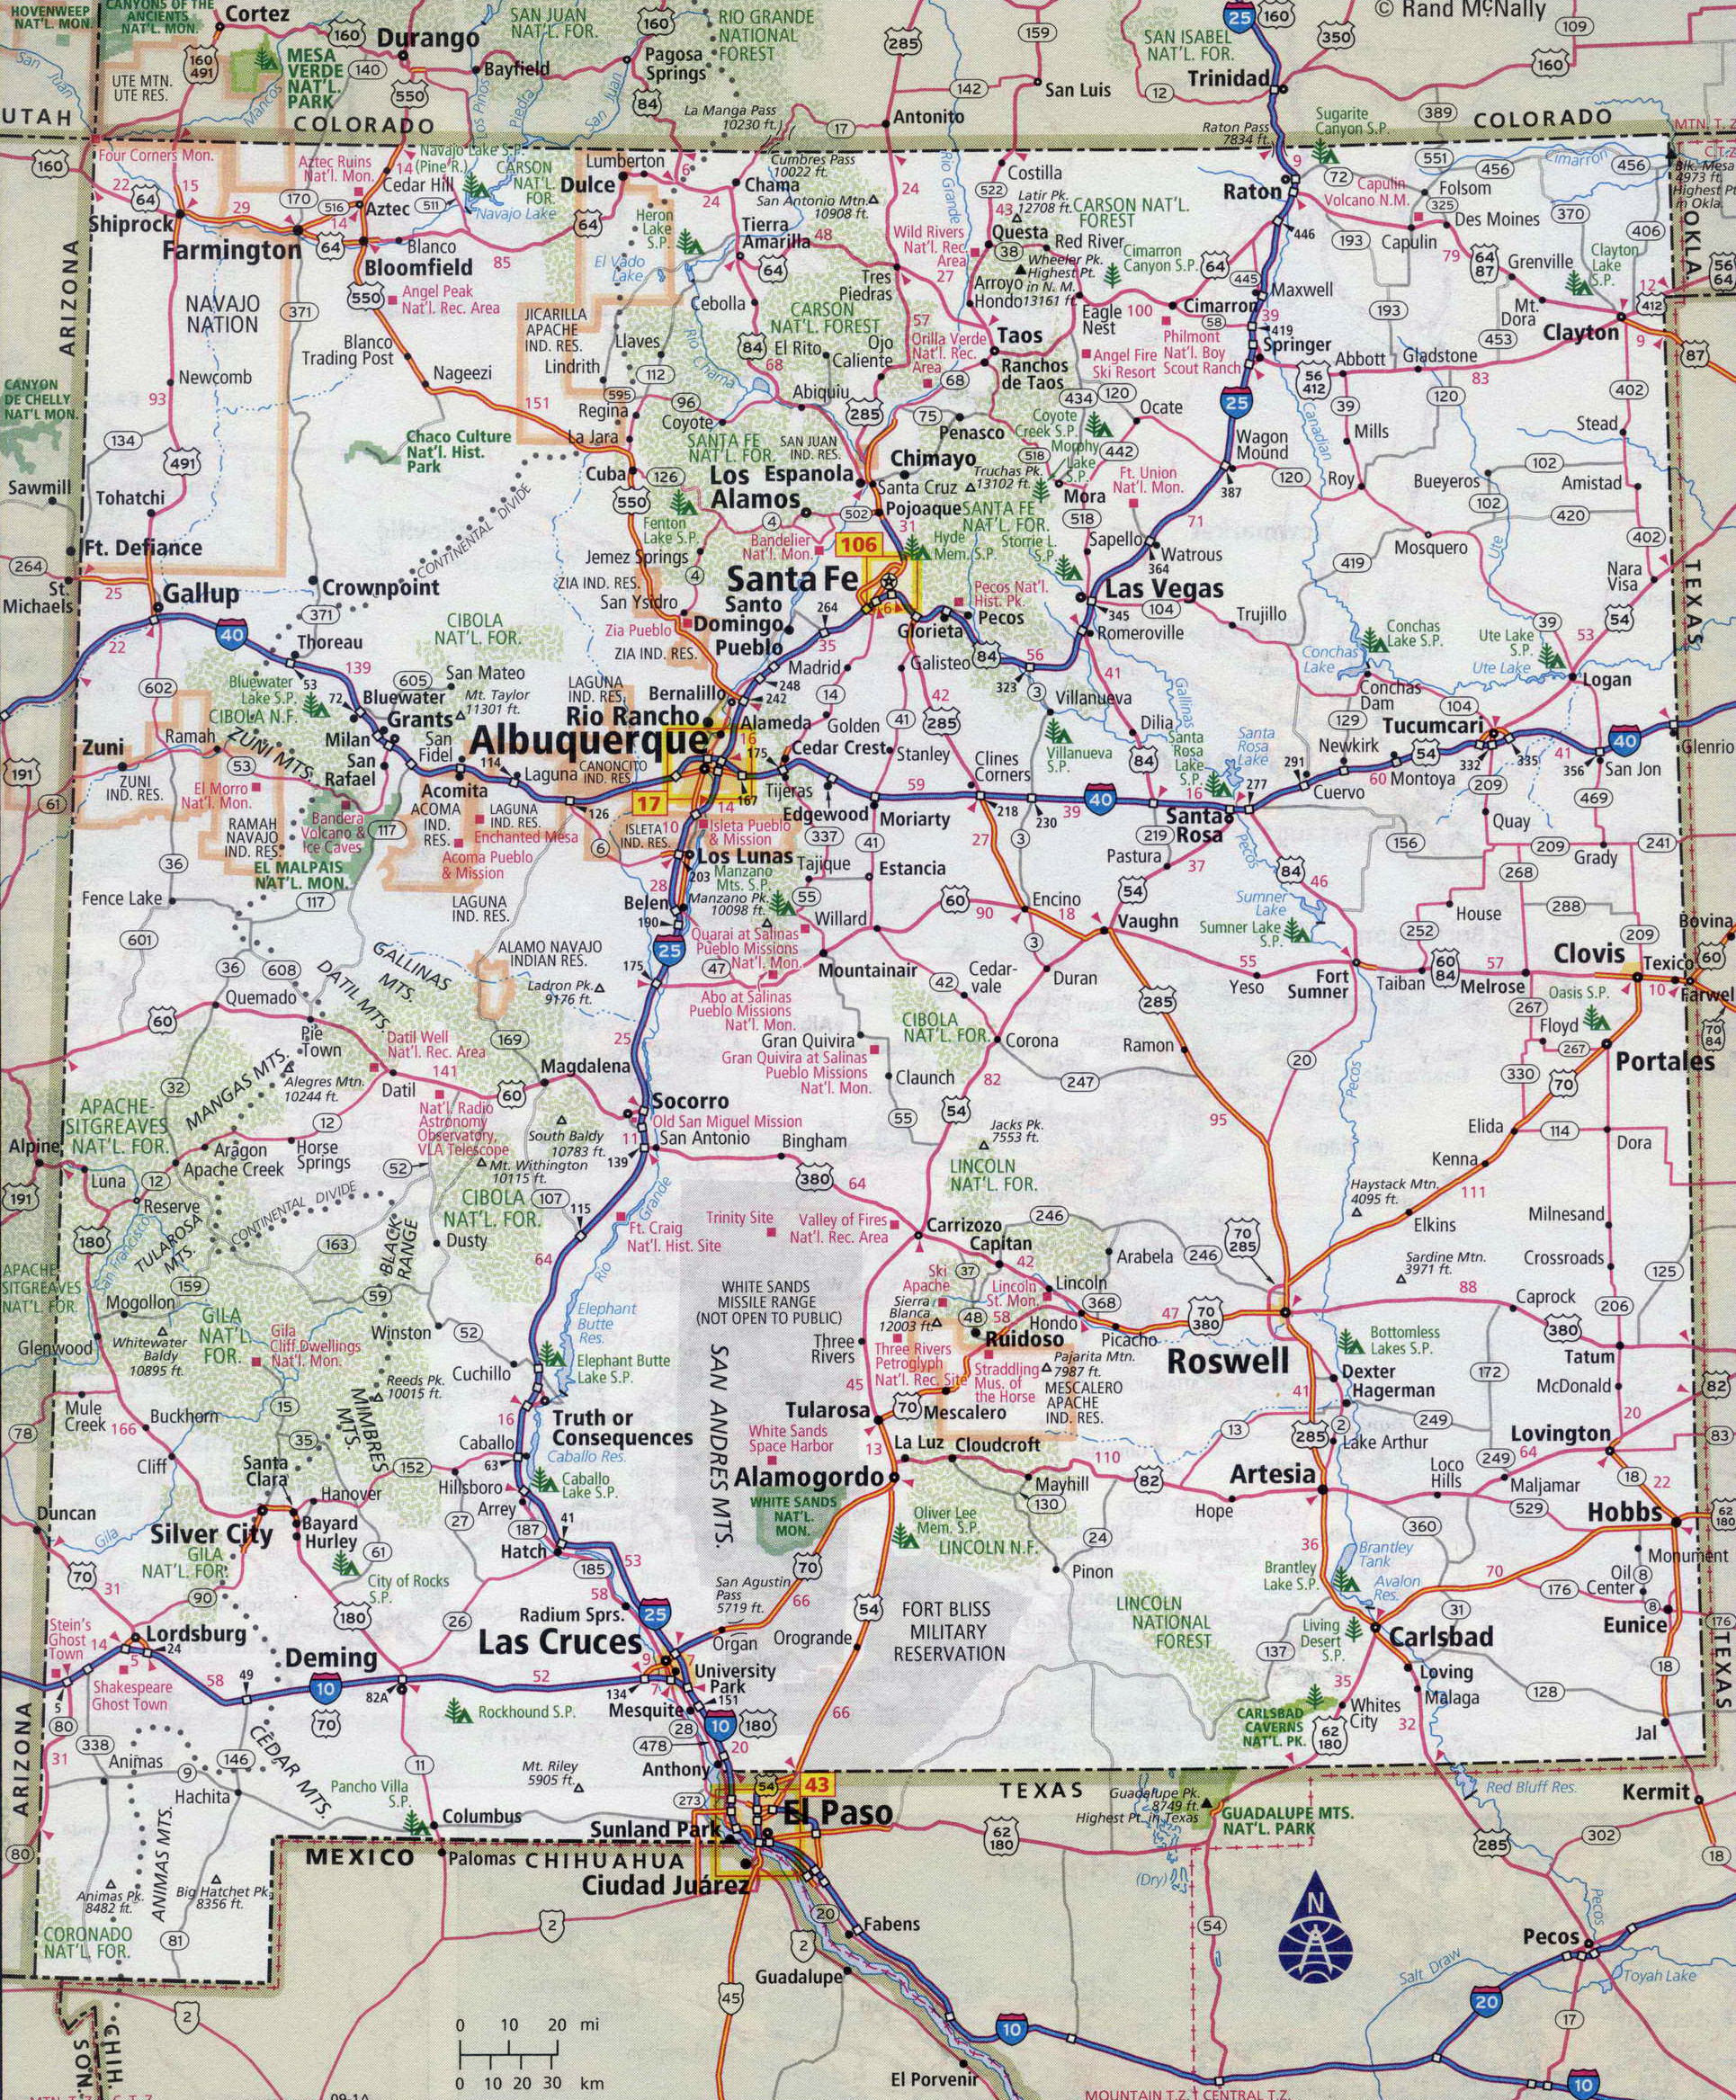 Large detailed roads and highways map of New Mexico state with